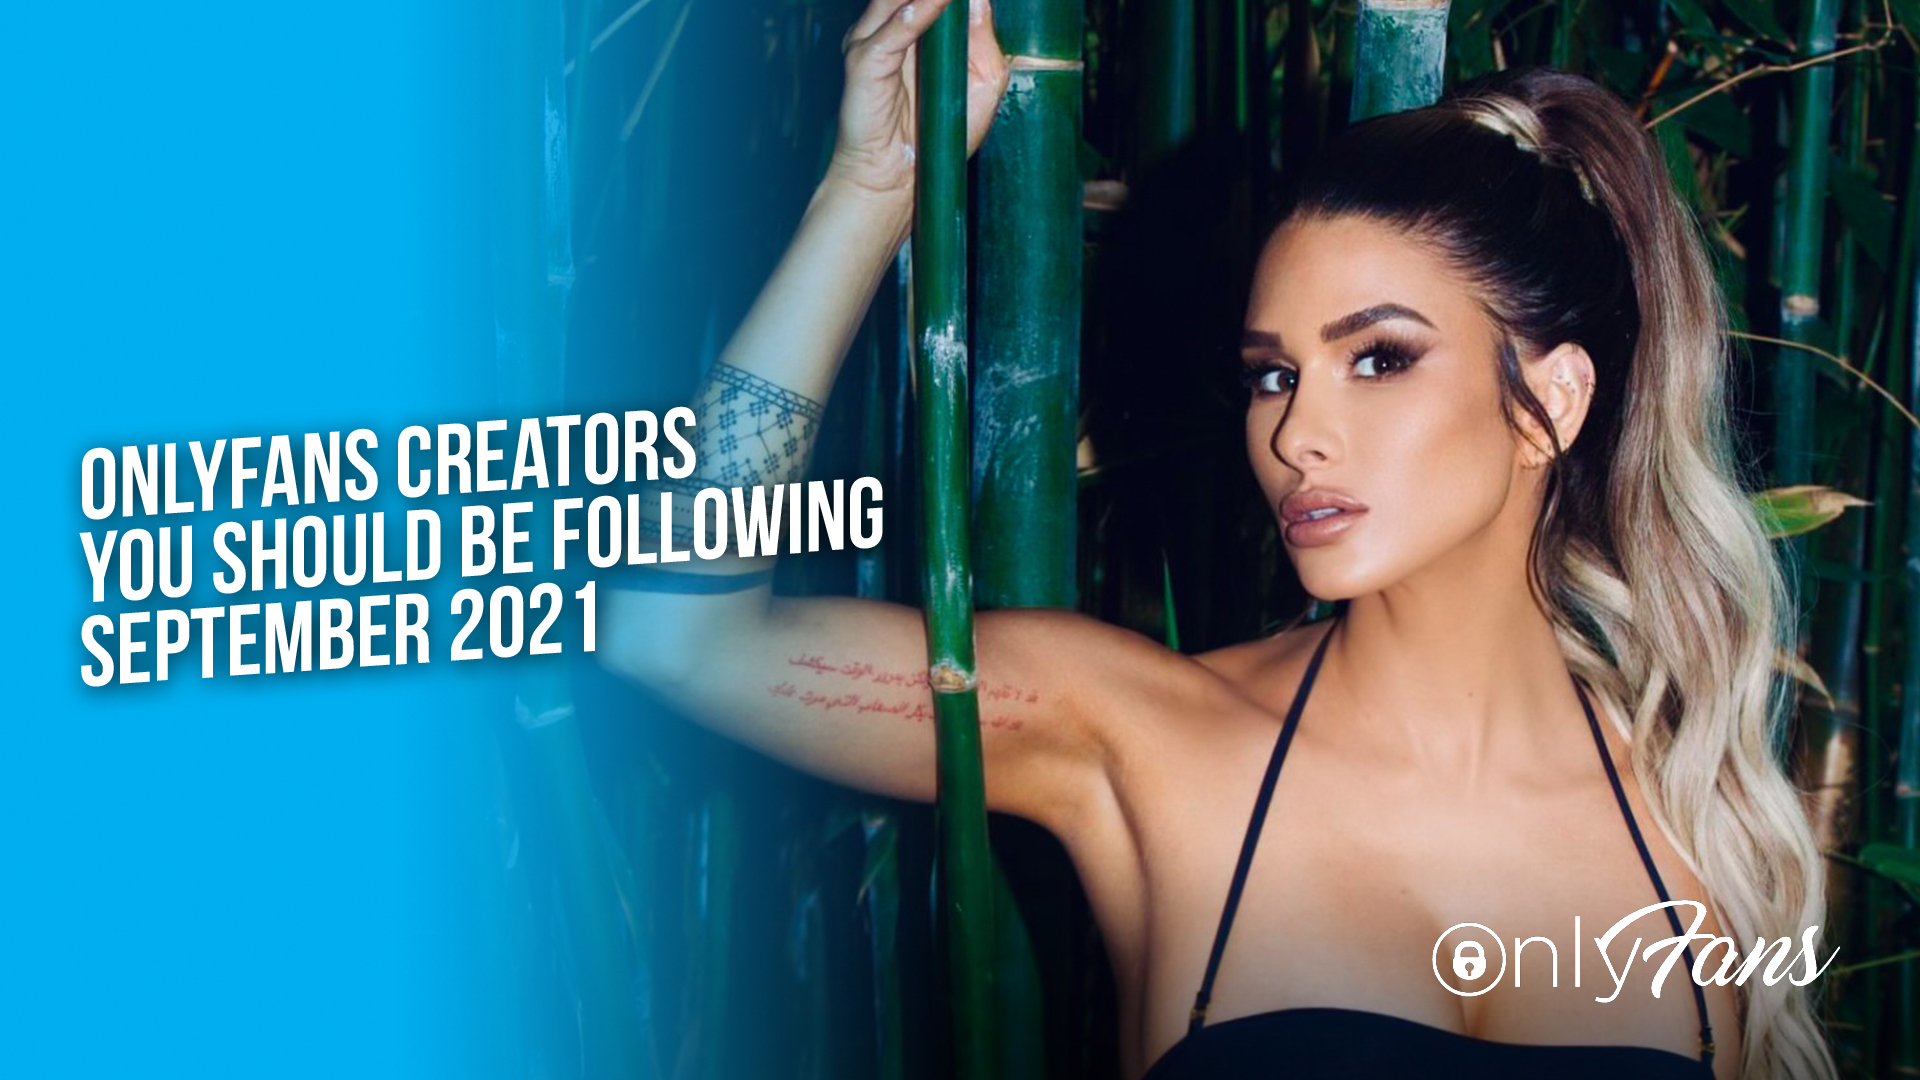 OnlyFans Creators You Should Be Following September 2021